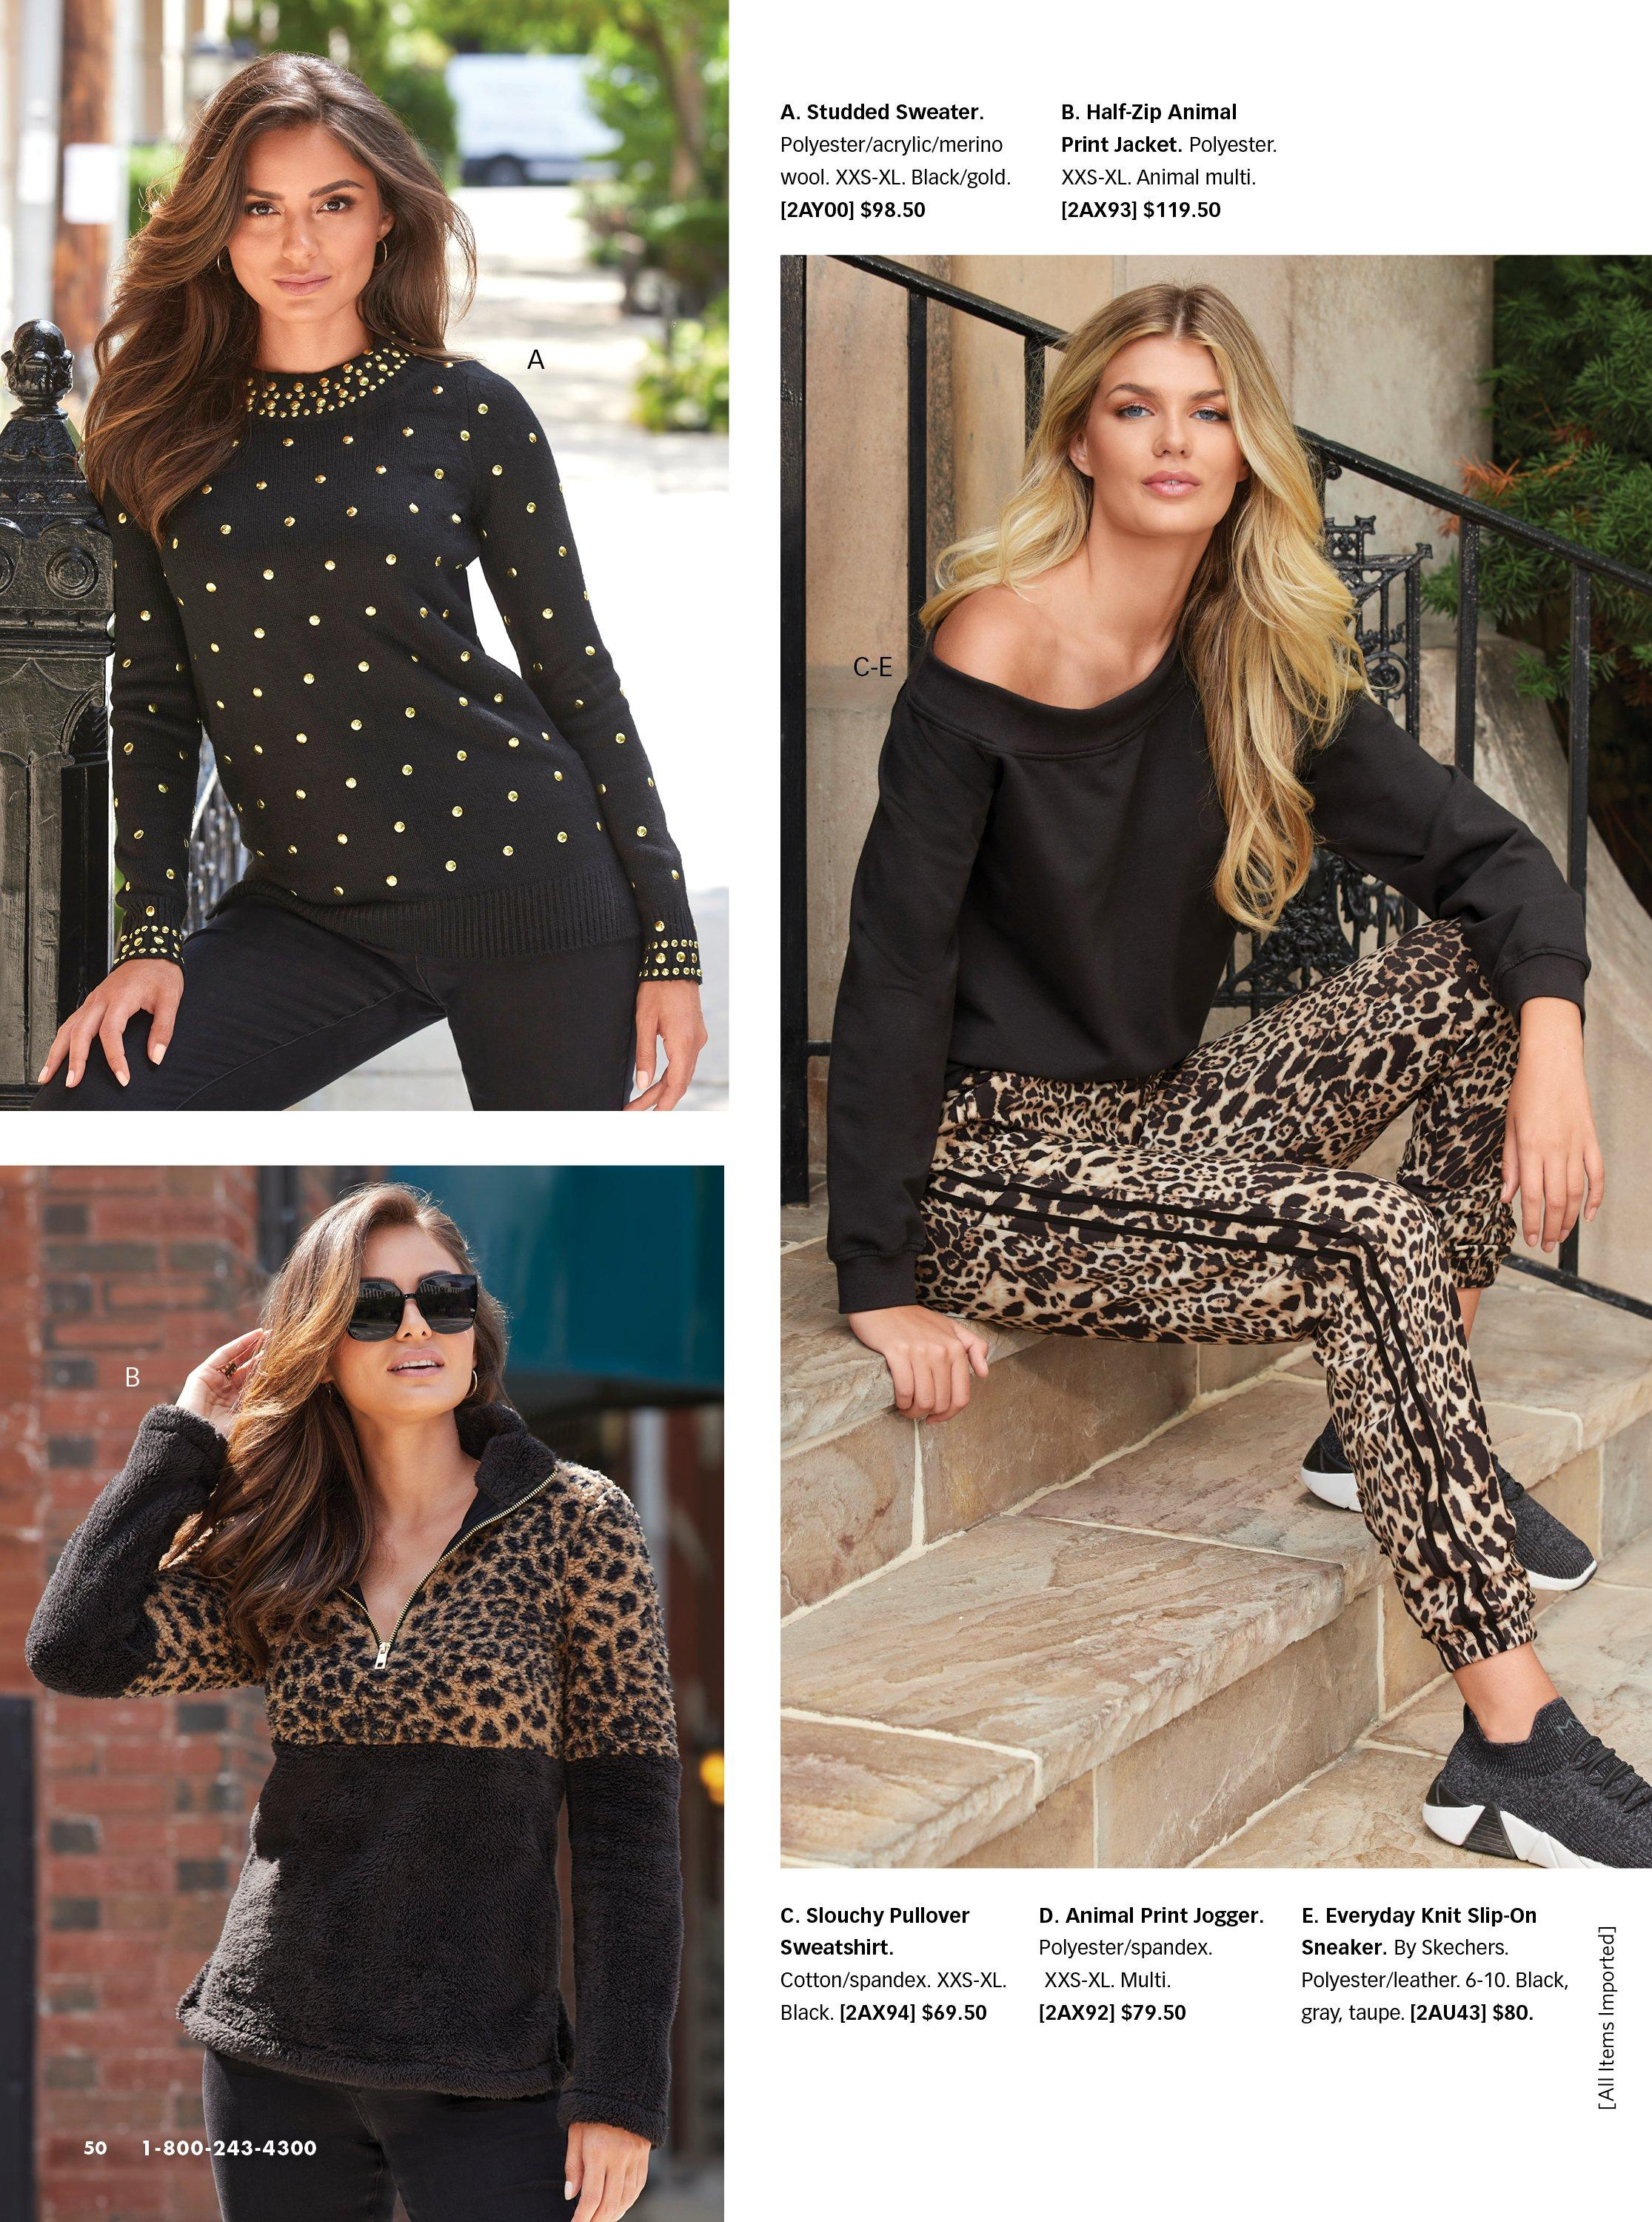 top left model wearing a black and gold studded sweater. bottom left model wearing a leopard and black half zip jacket. right model wearing a black slouchy sweatshirt, animal print leggings, and black sneakers.